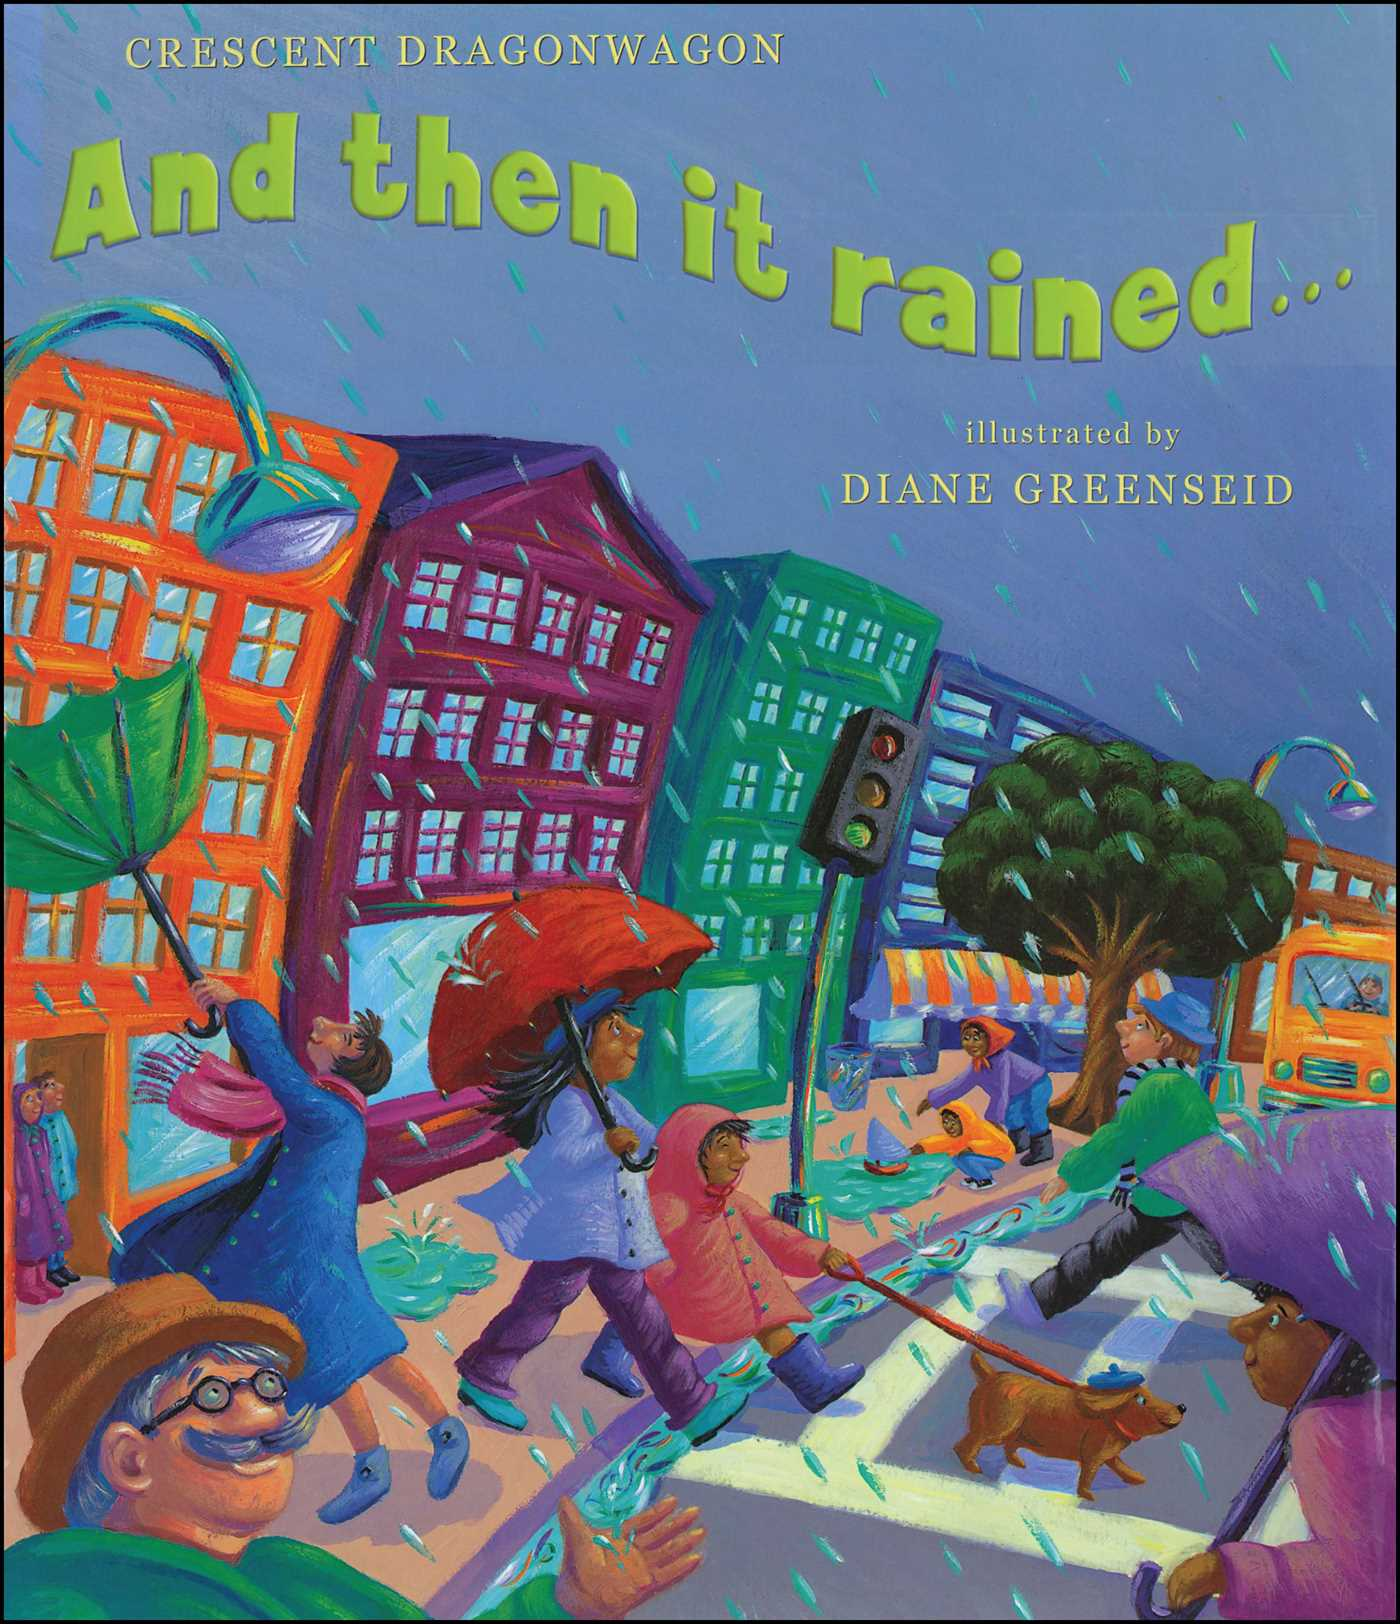 Home place book by crescent dragonwagon jerry pinkney and then it rained fandeluxe Gallery